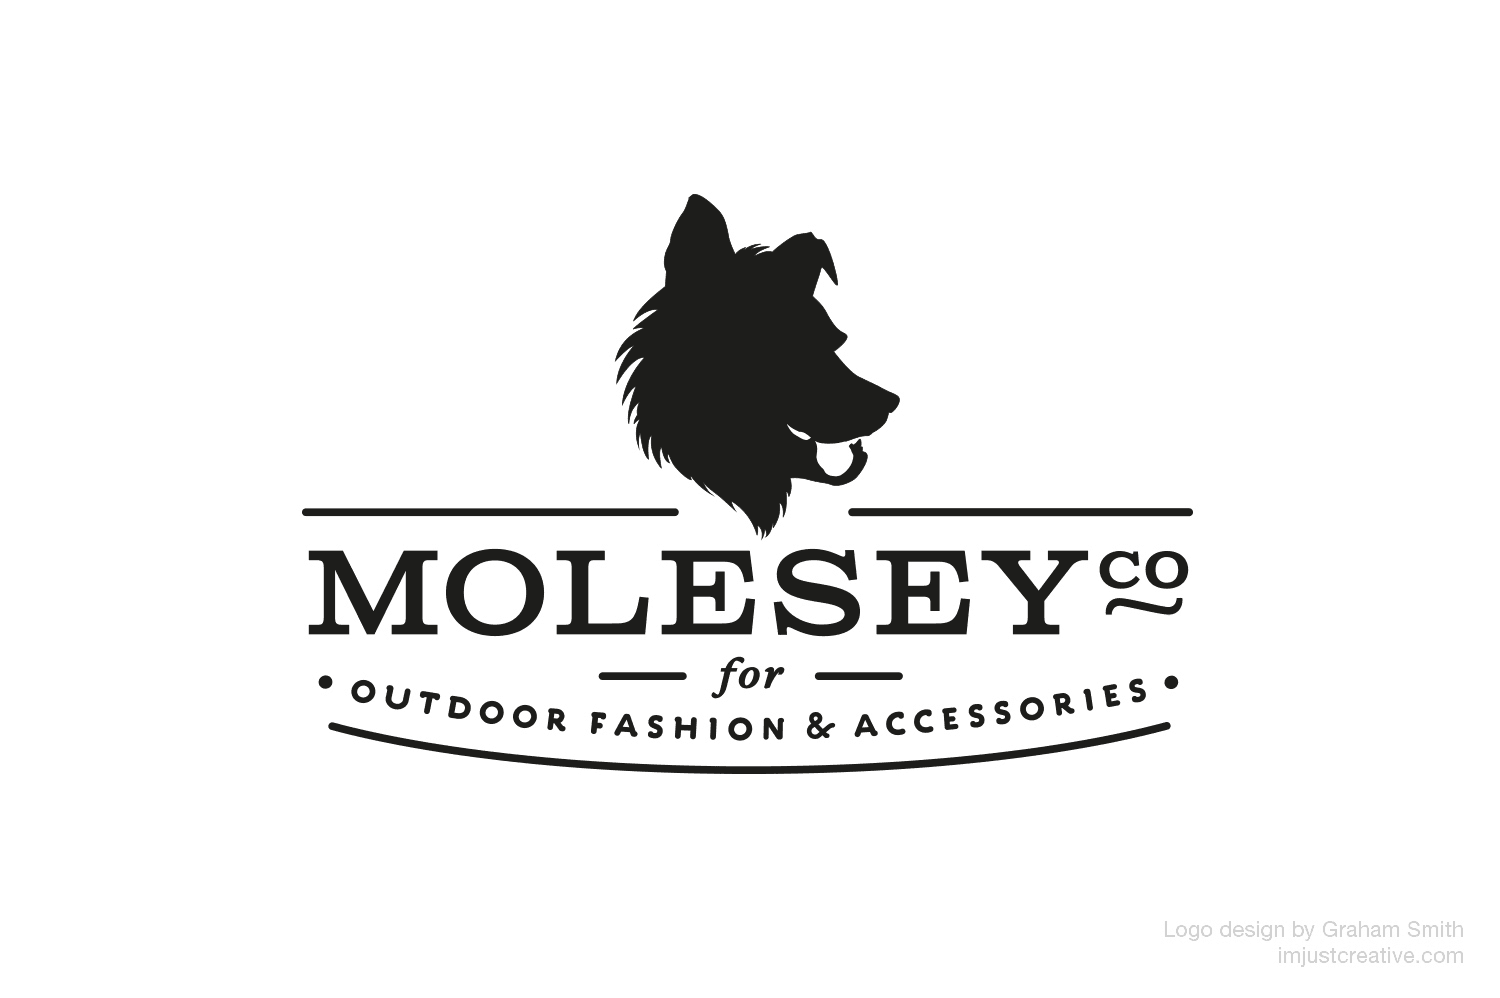 MoleseyCo logo design 2 by imjustcreative